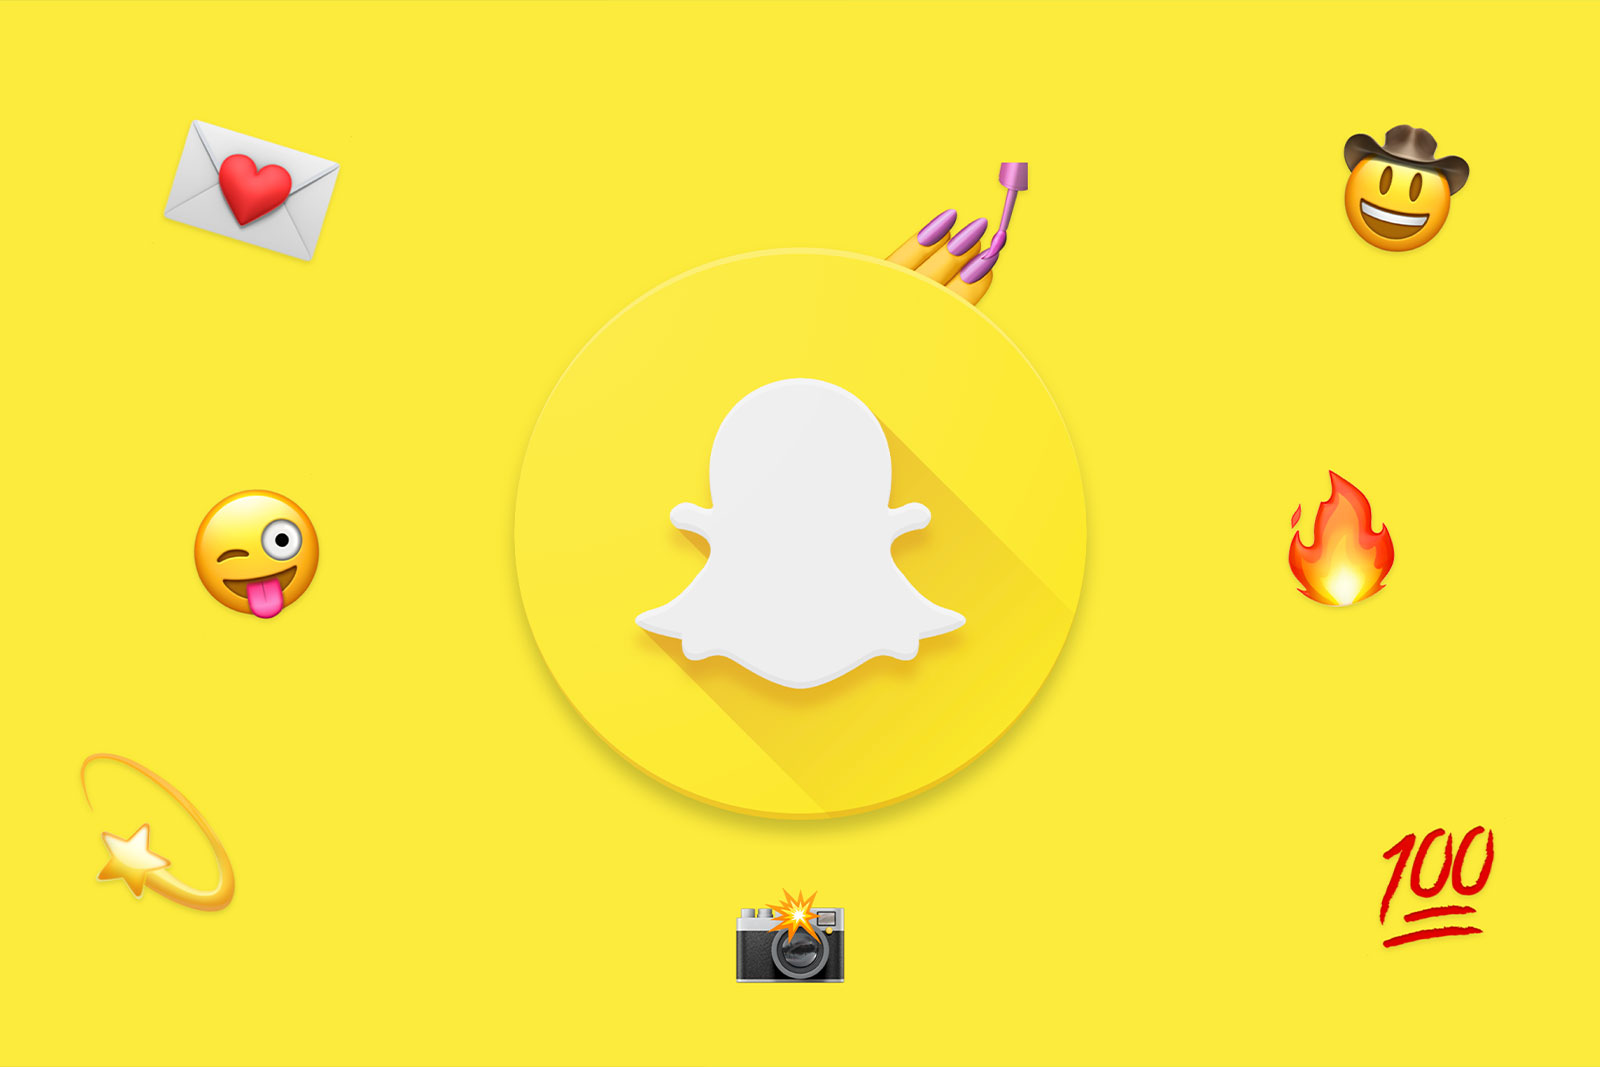 The Snapchat logo surrounded by various emoticons.